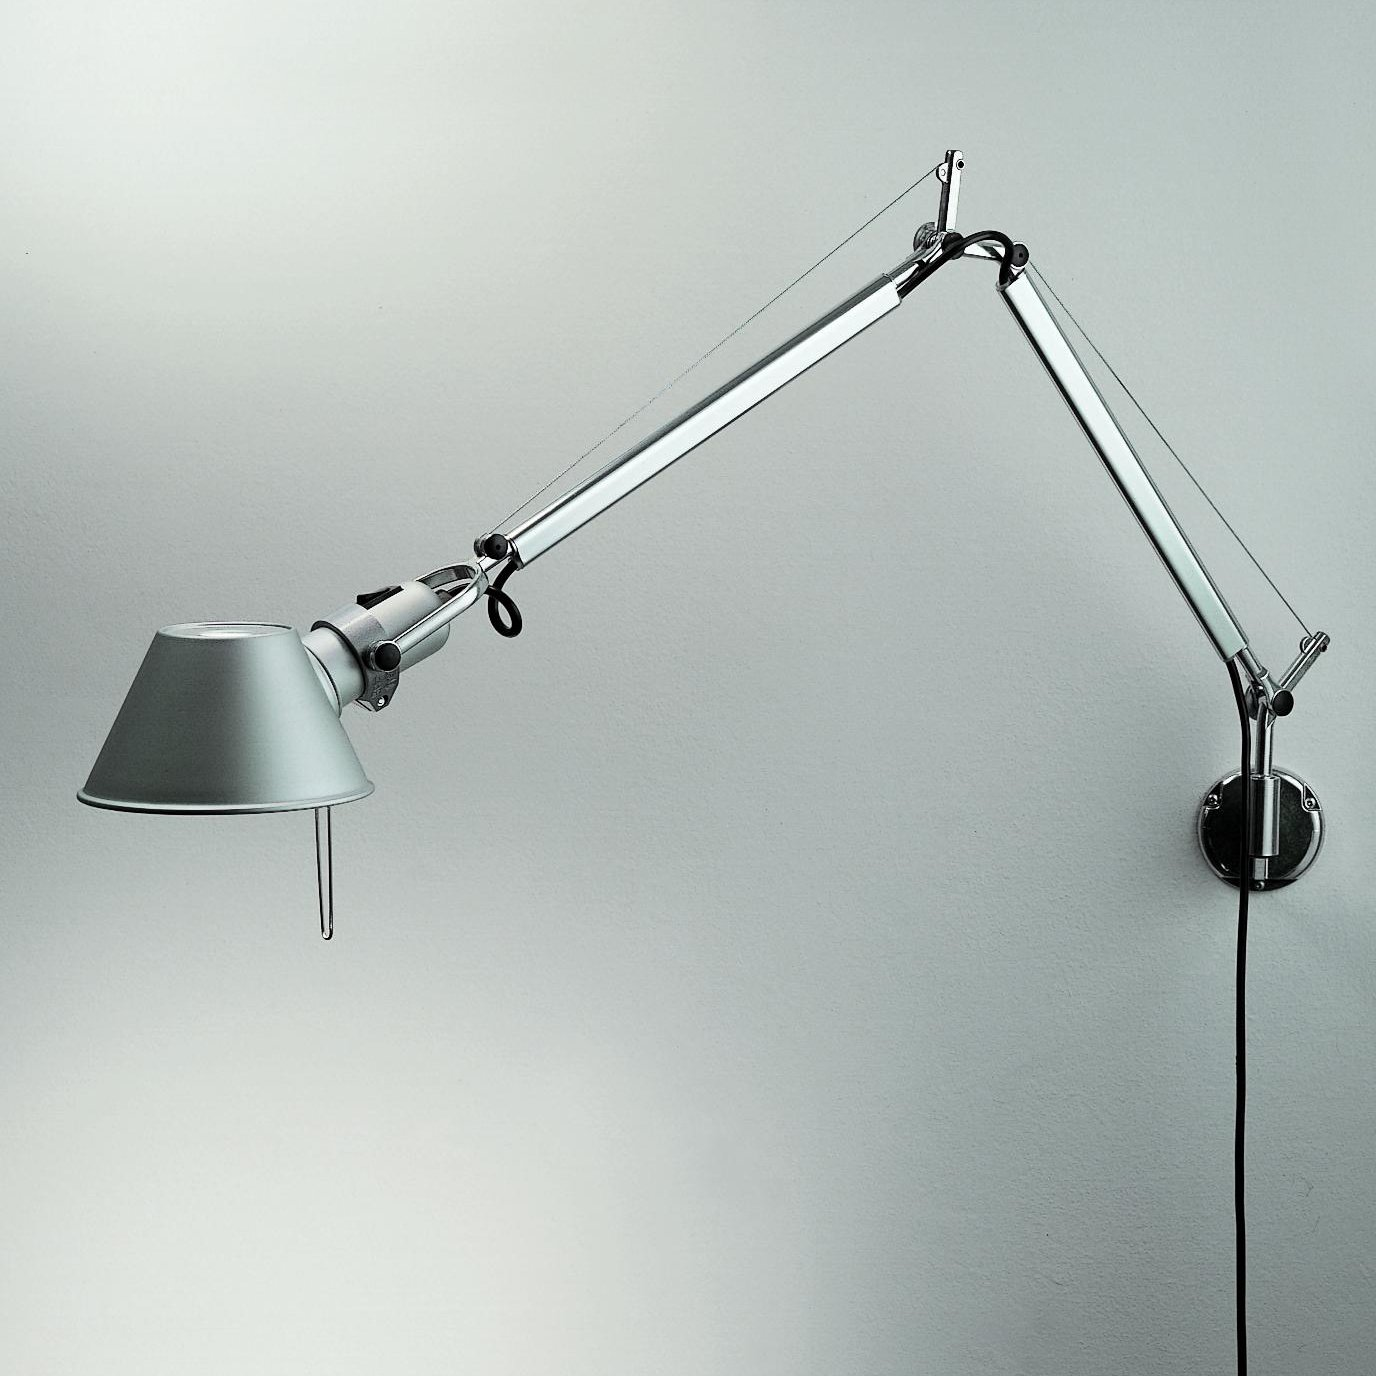 Wall Mount Lamp Set : Wall mounted desk lamp - 10 things to know before installing Warisan Lighting